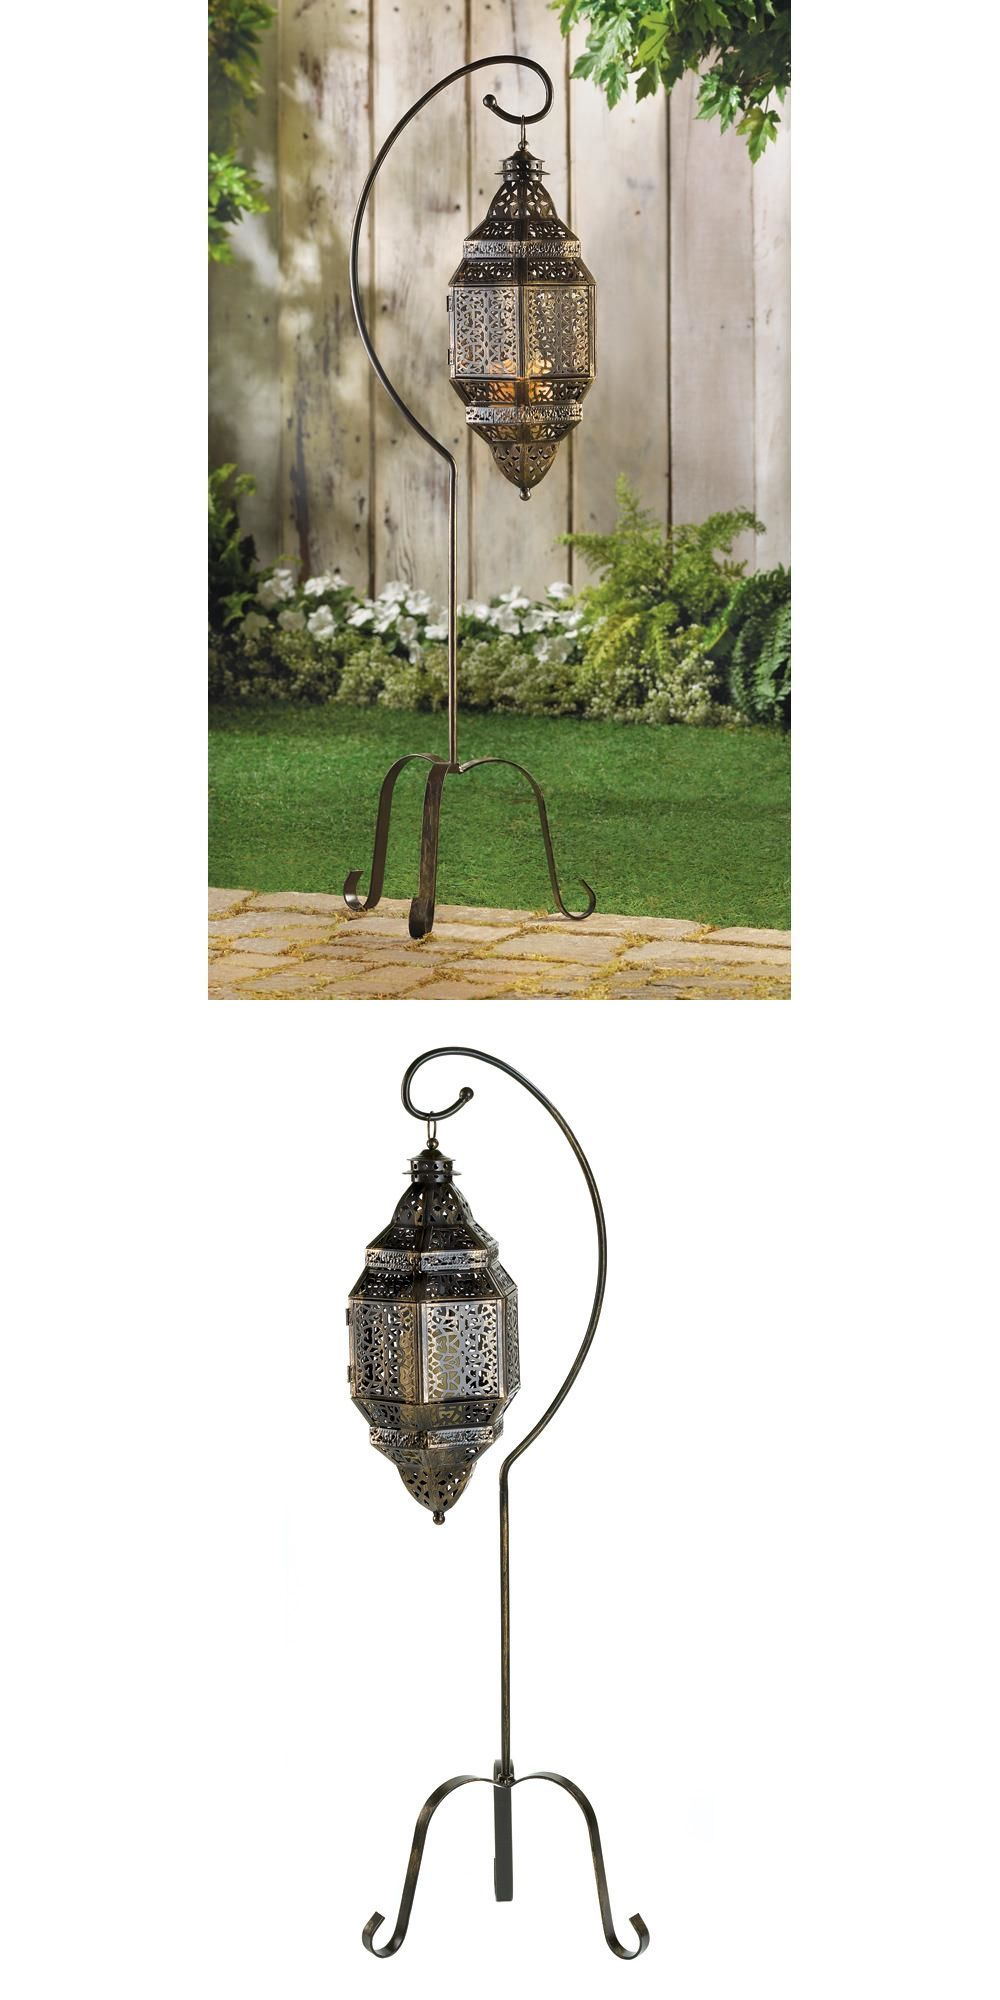 Hanging outdoor candle lanterns for patio - Outdoor D Cor Candle Lanterns 183392 Moroccan Hanging Candle Lantern W Stand Patio Garden Yard